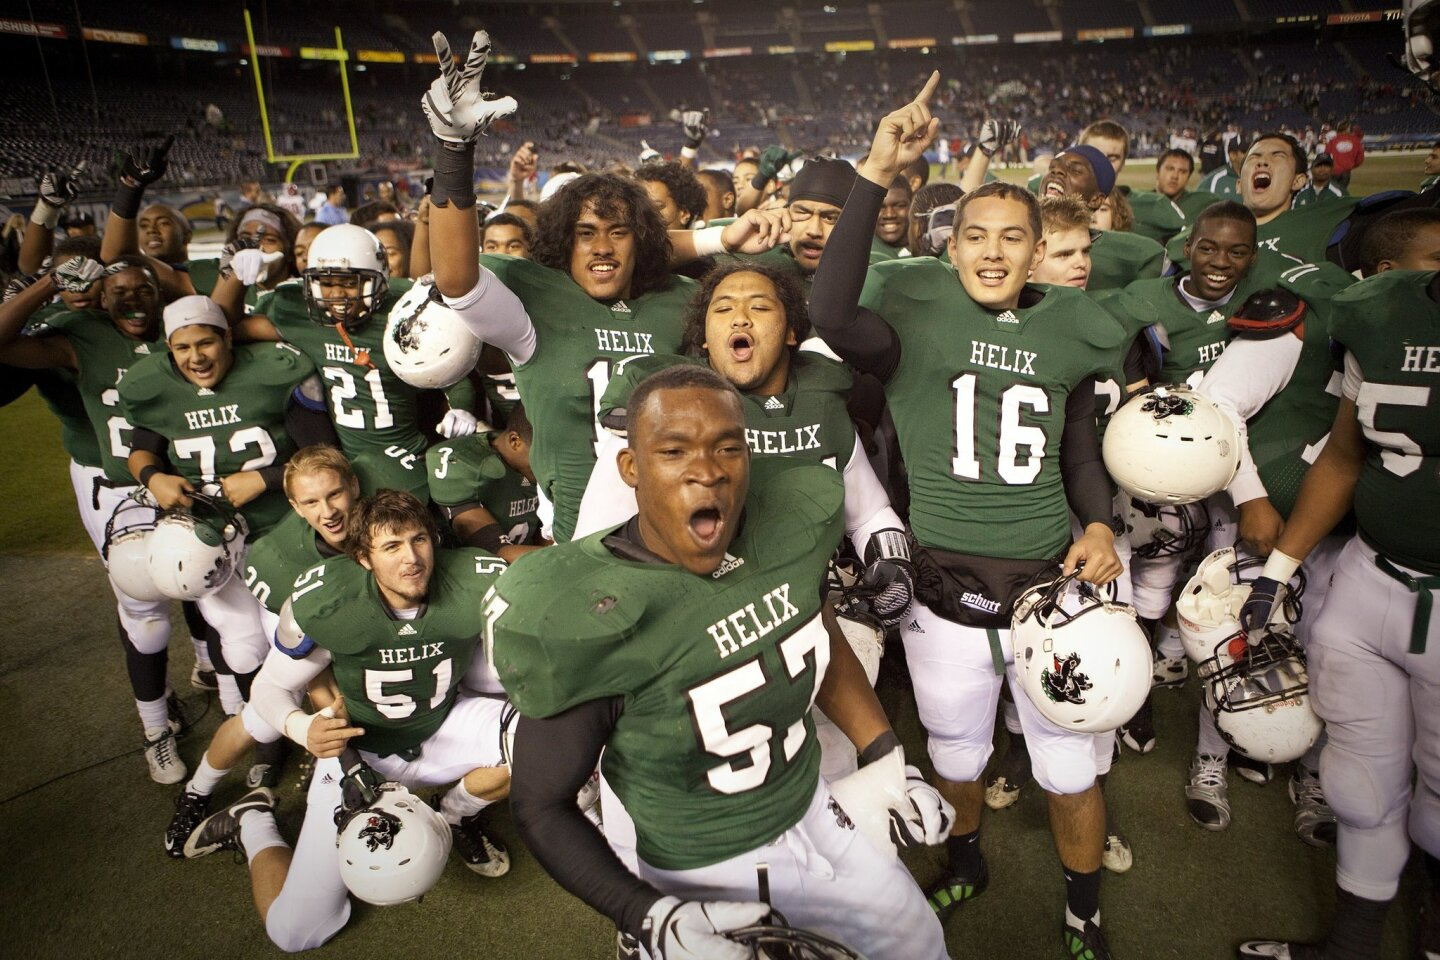 Helix #57 Ernest Shipley lead his team after Helix 44-6 rout of Oceanside for the San Diego Section Division 2 title.